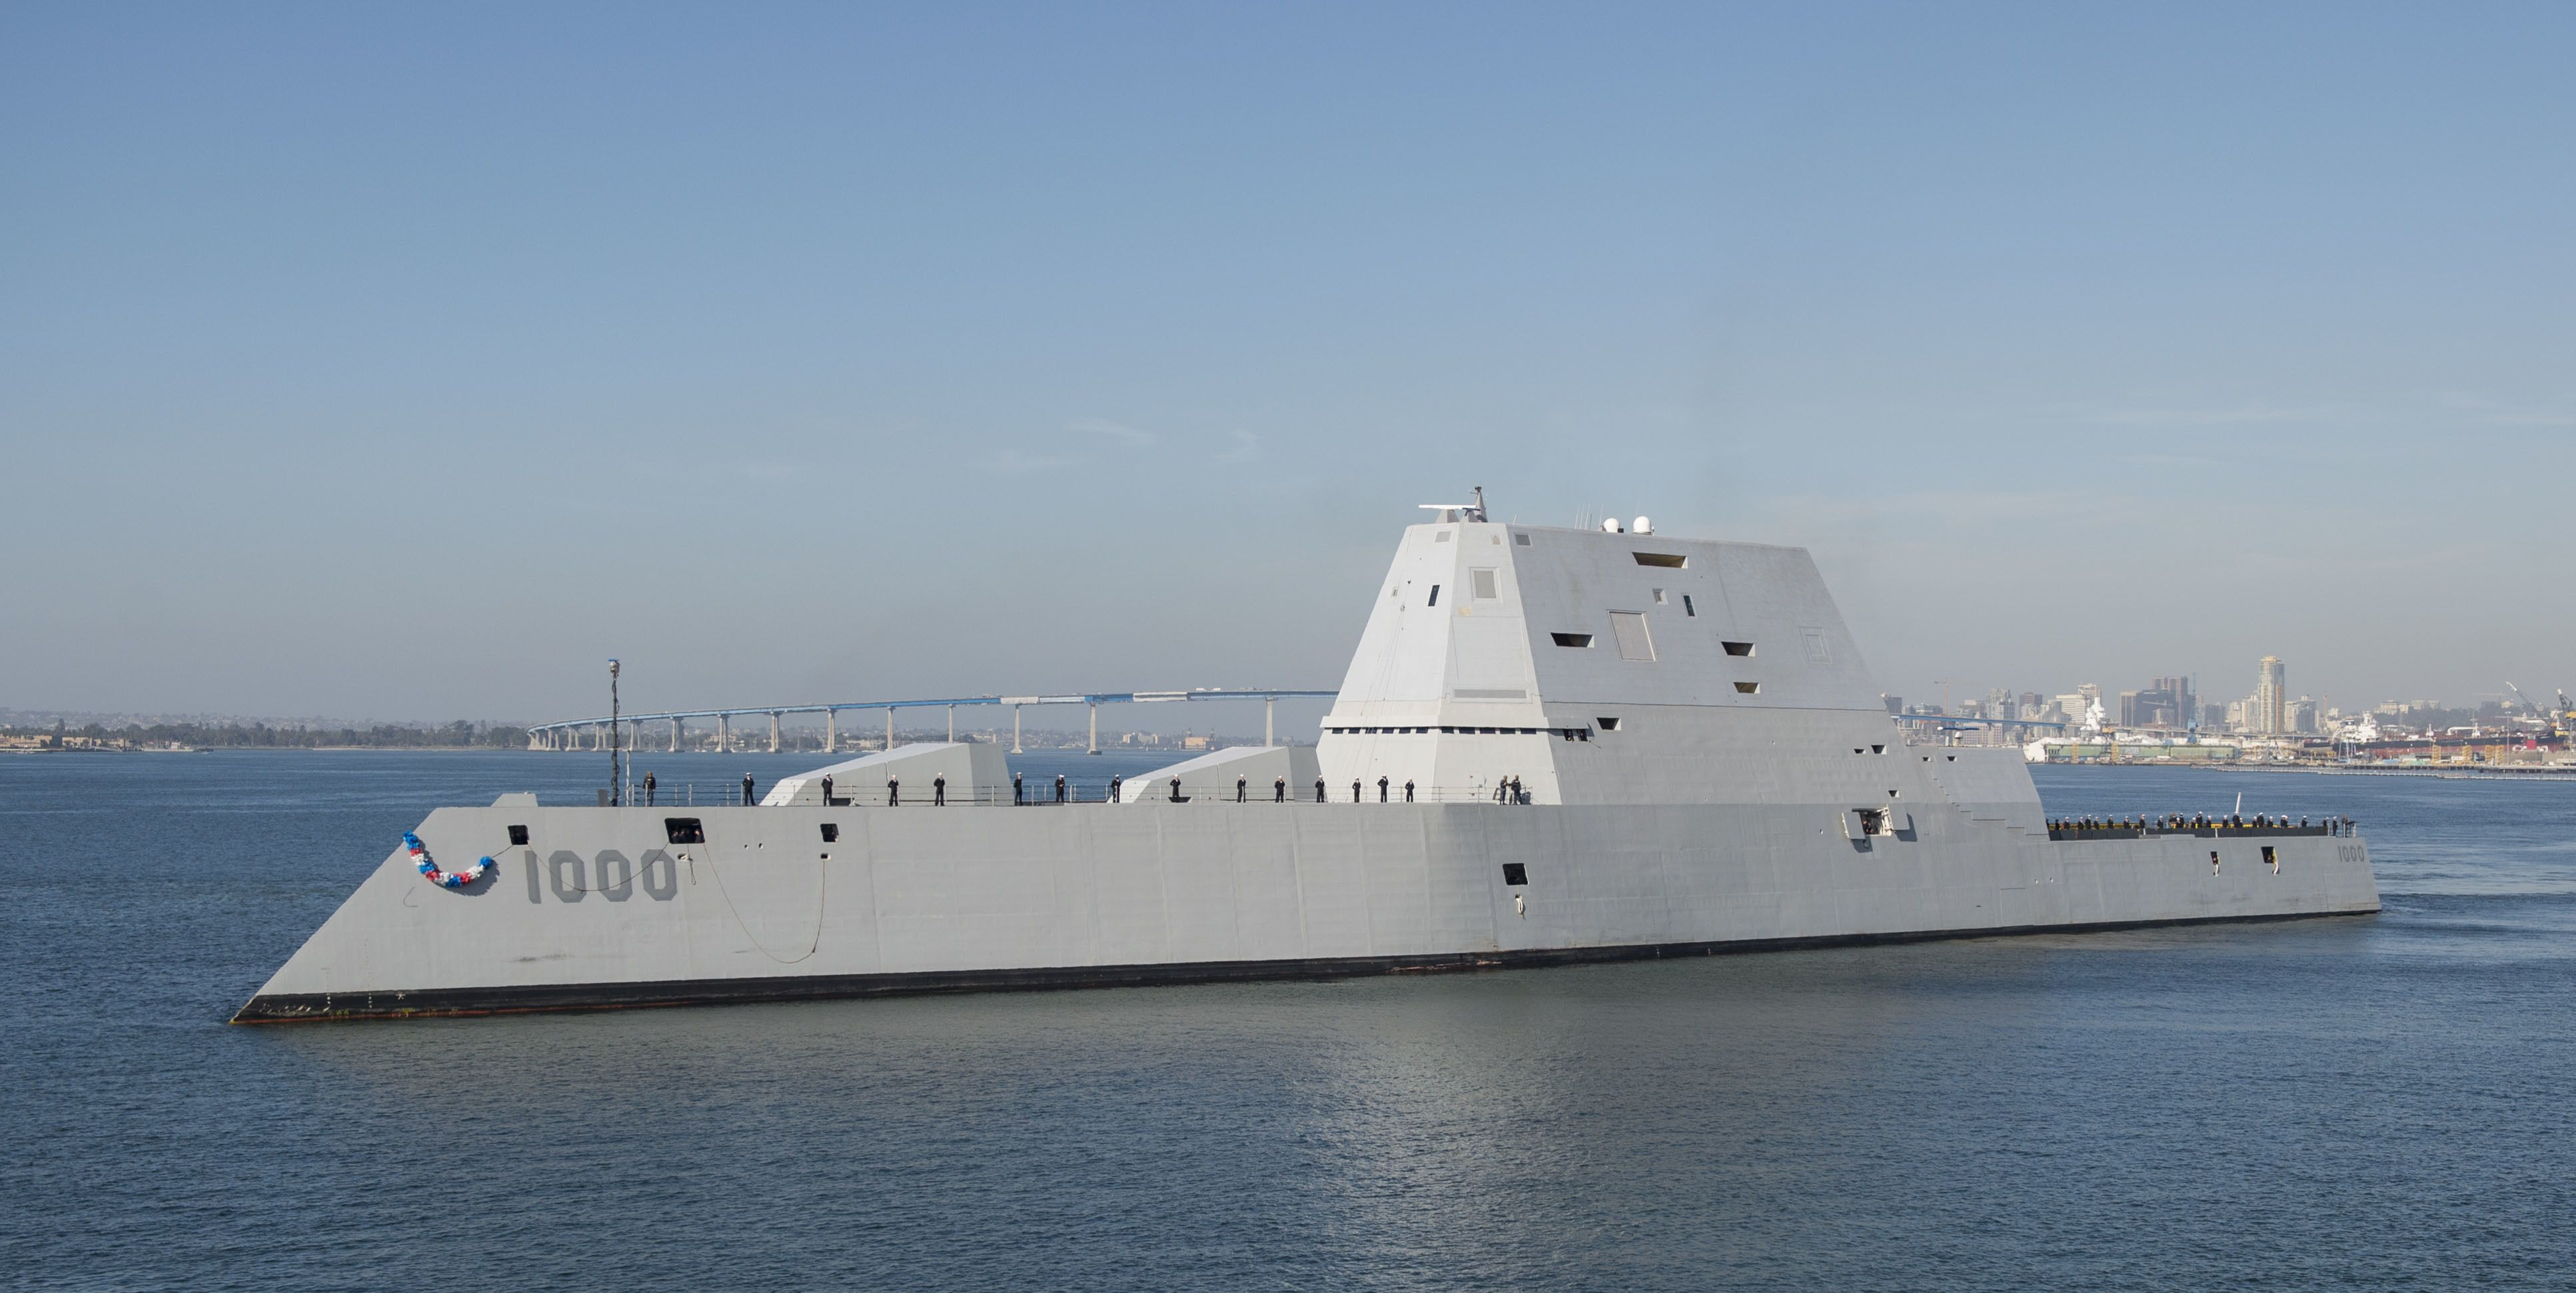 The U.S. Navy's Newest Stealth Destroyer Promptly Suffers a Breakdown (popularmechanics.com)